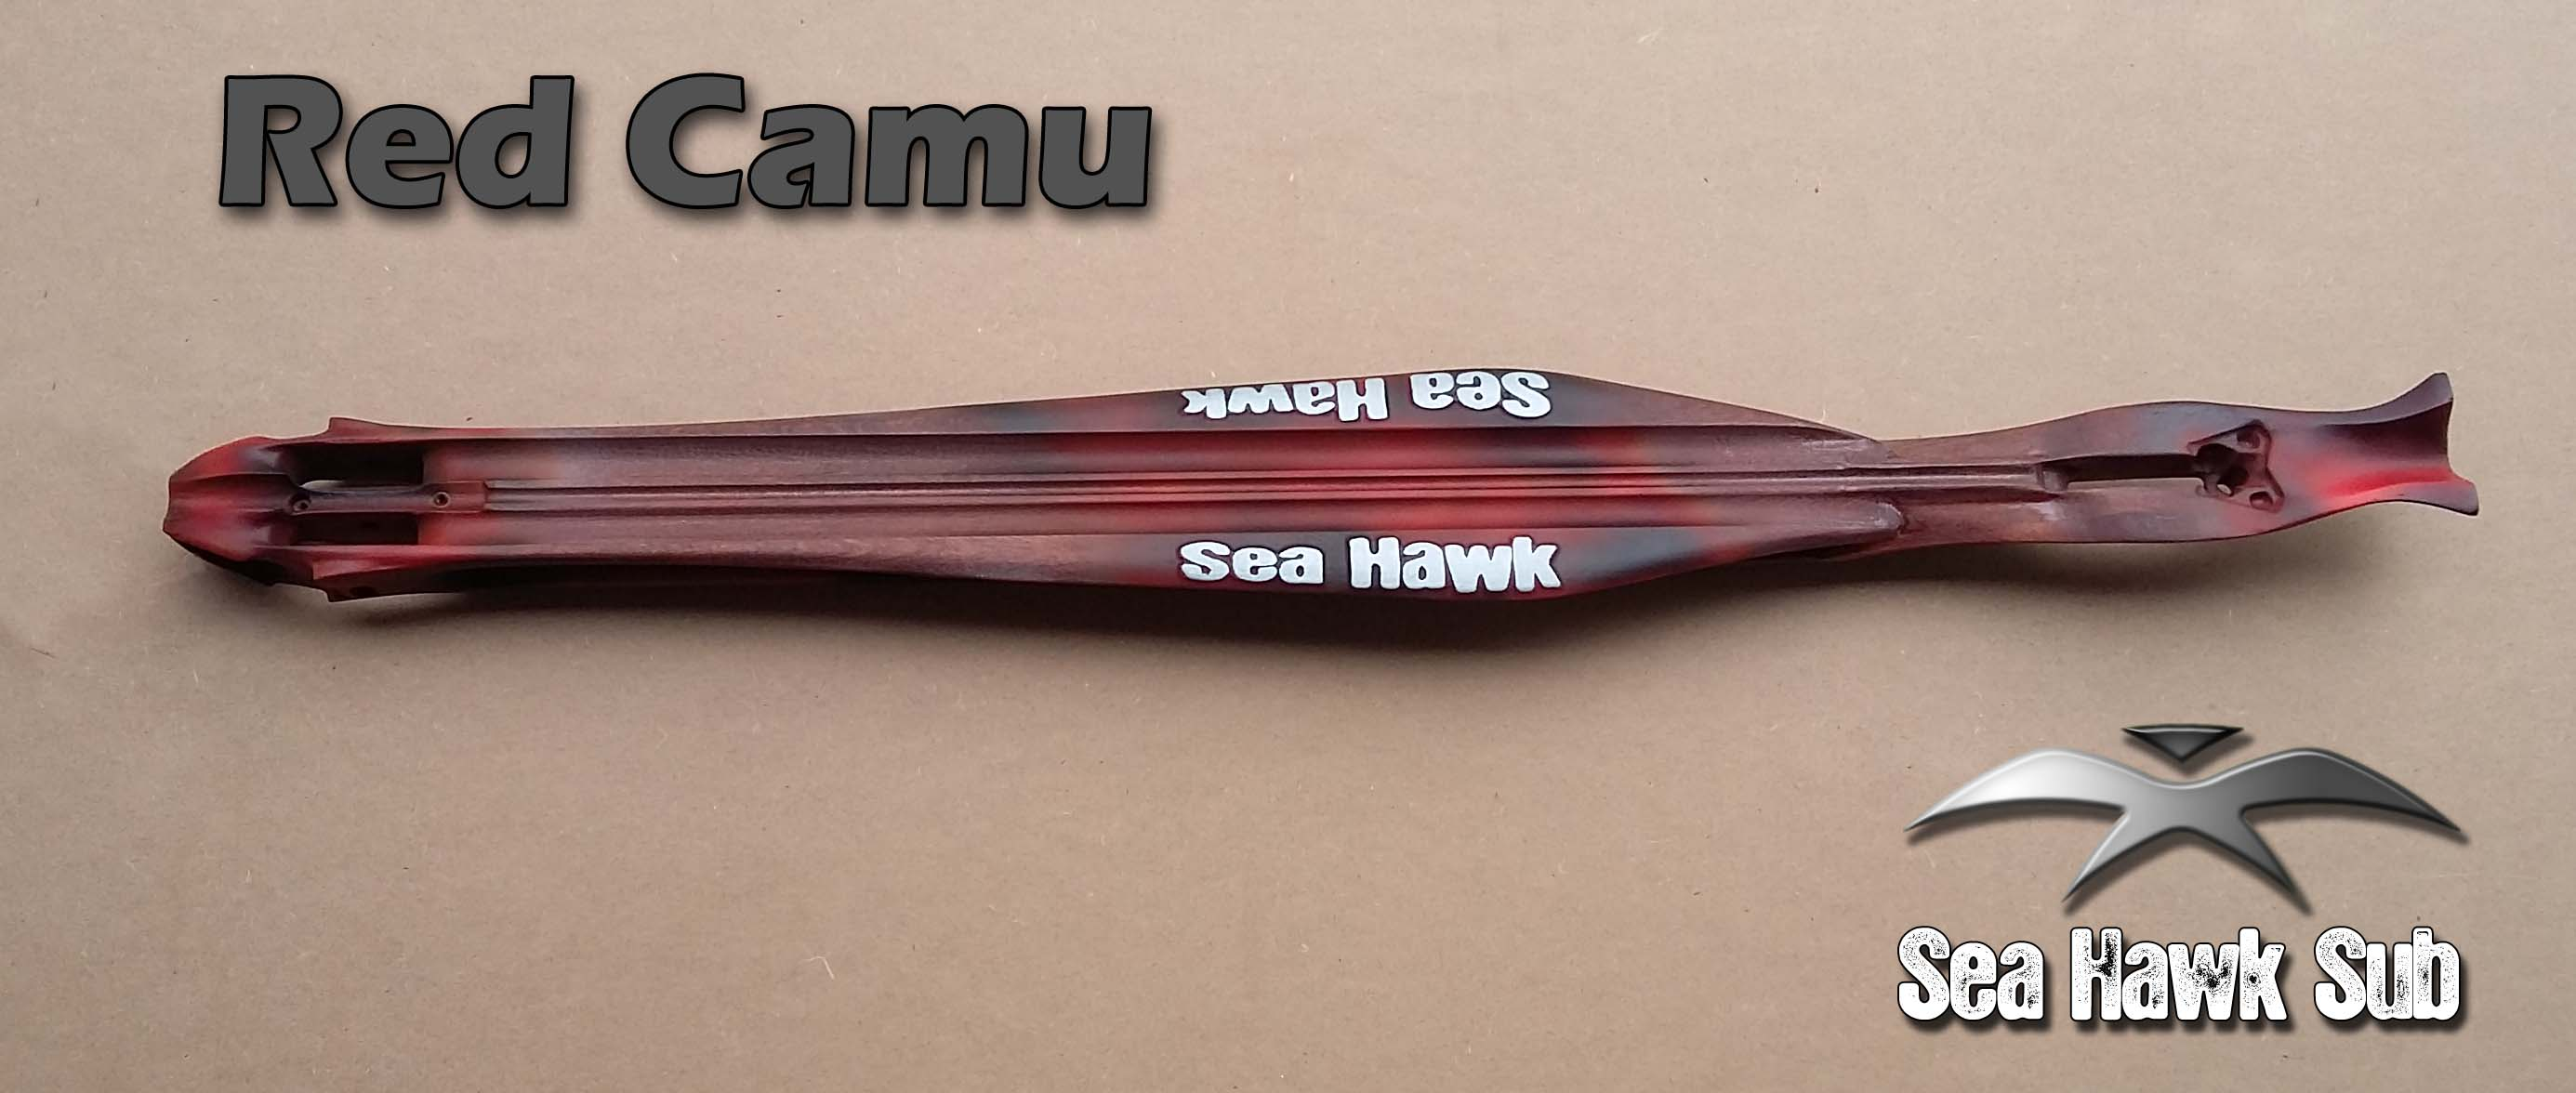 0 seahawksub Spearfishing pescasub rollergun speargun Red camu